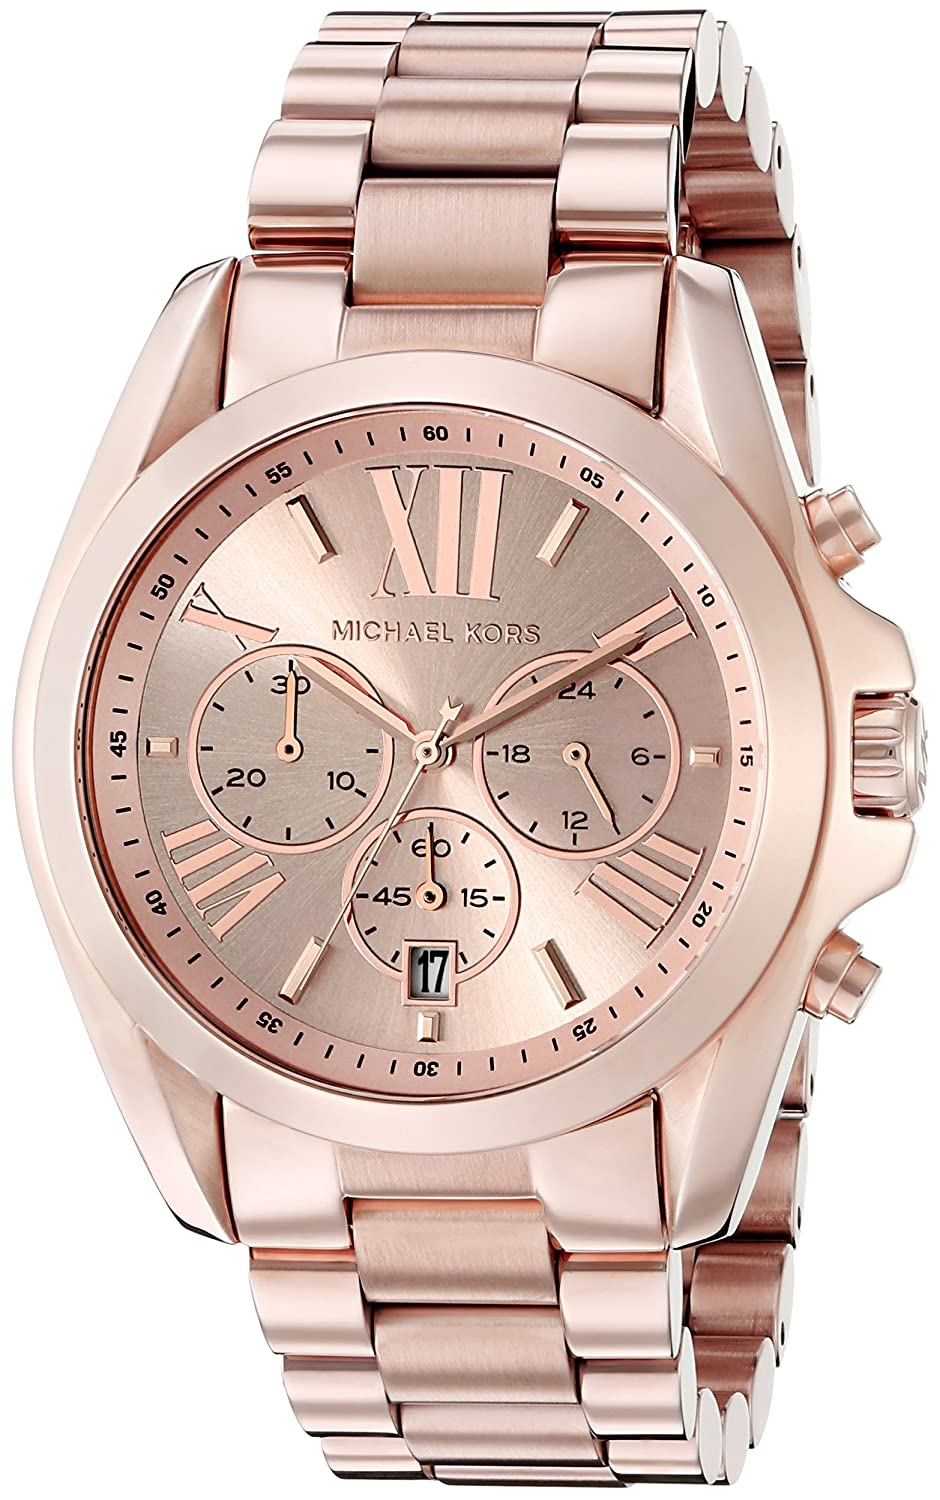 The michael kors women's mk ritz horn watch has a resin strap.